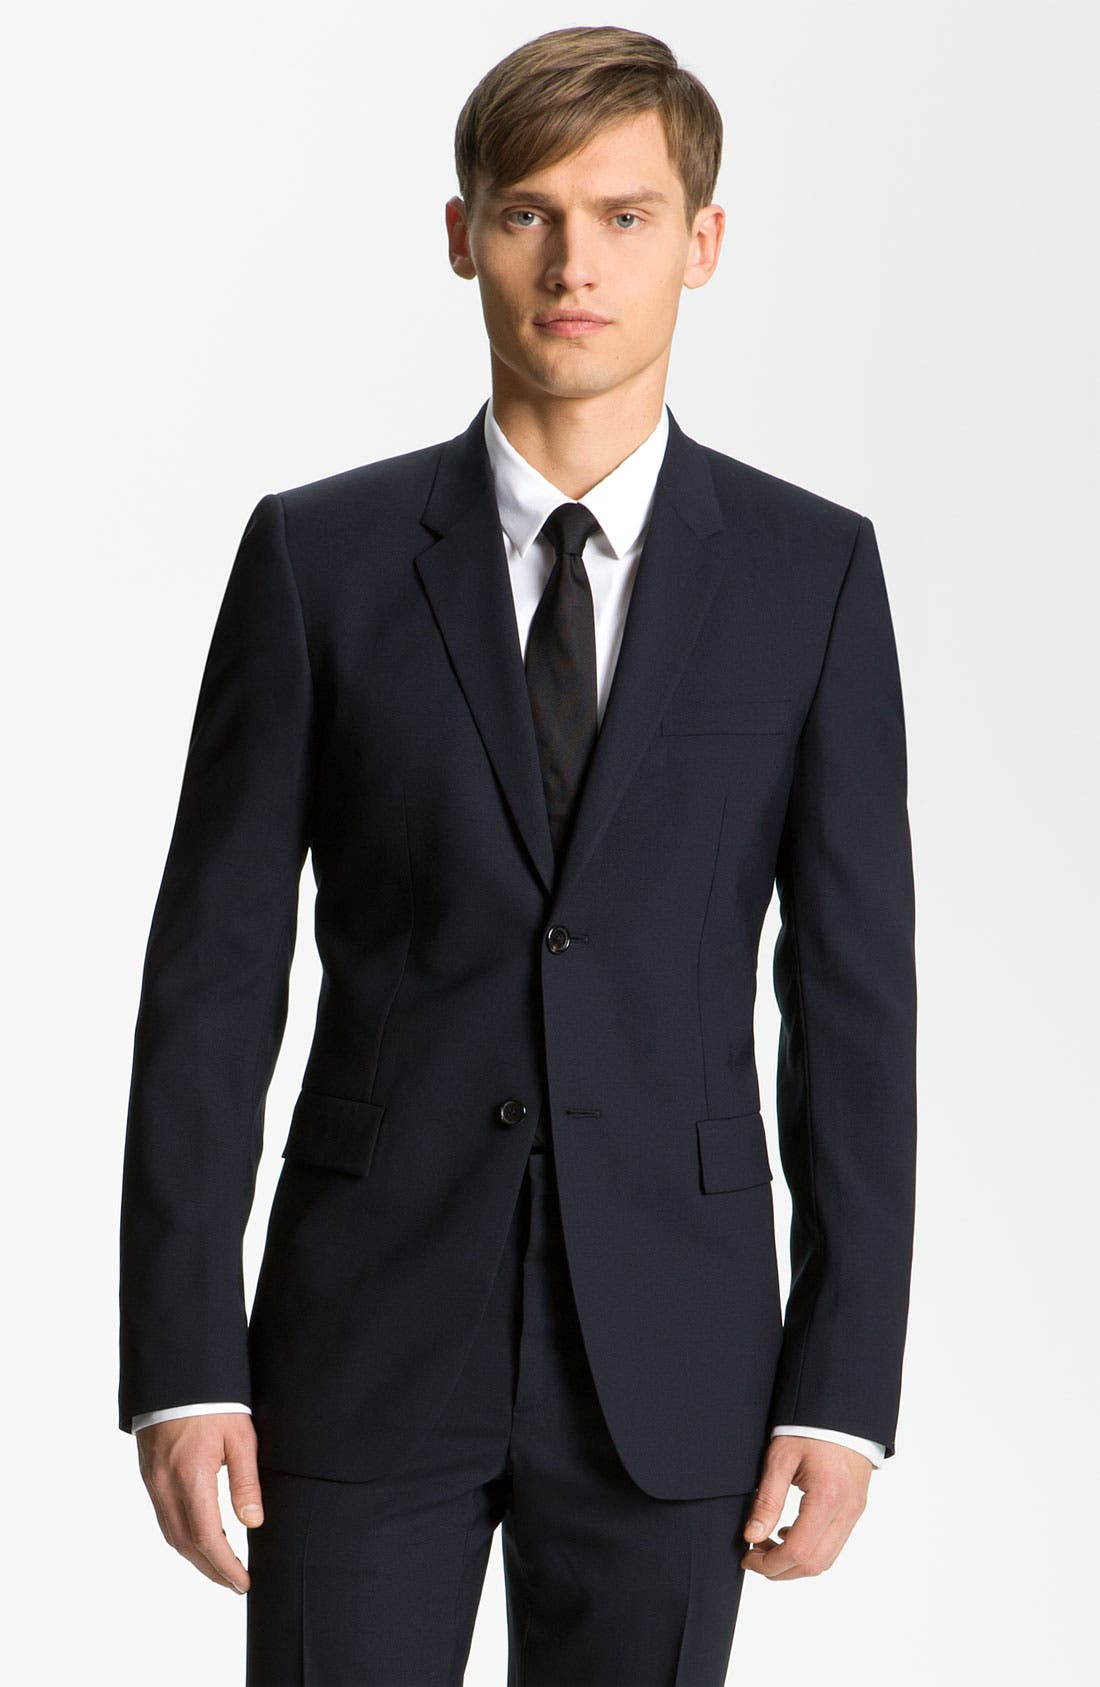 Stretch Wool Blend Suit,                             Main thumbnail 1, color,                             Dark Blue